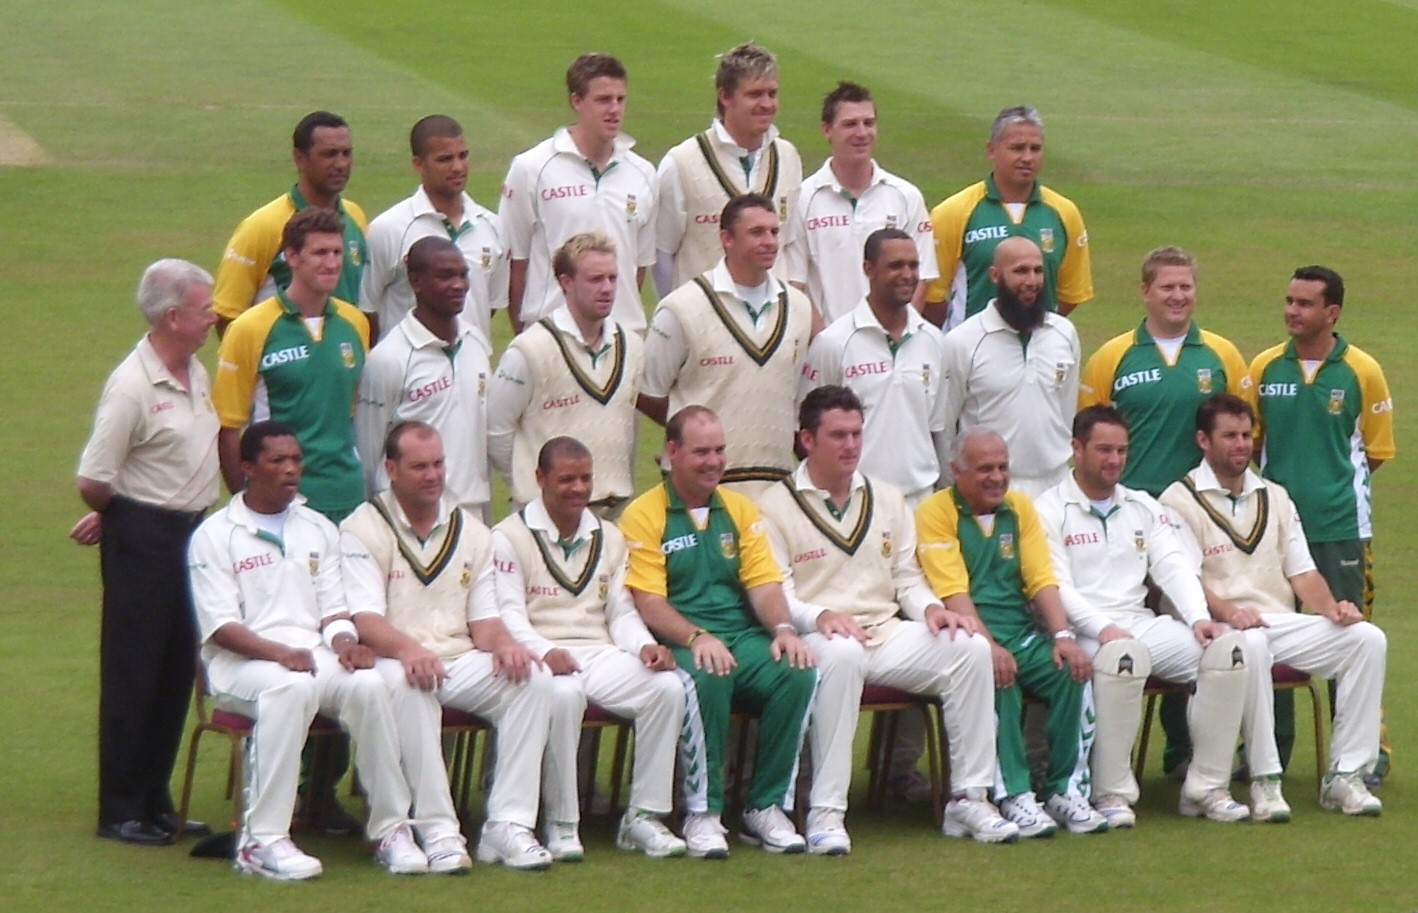 Indian Cricket Team Leaves For South Africa: Cricket World Cup 2011: 1983 World Cup